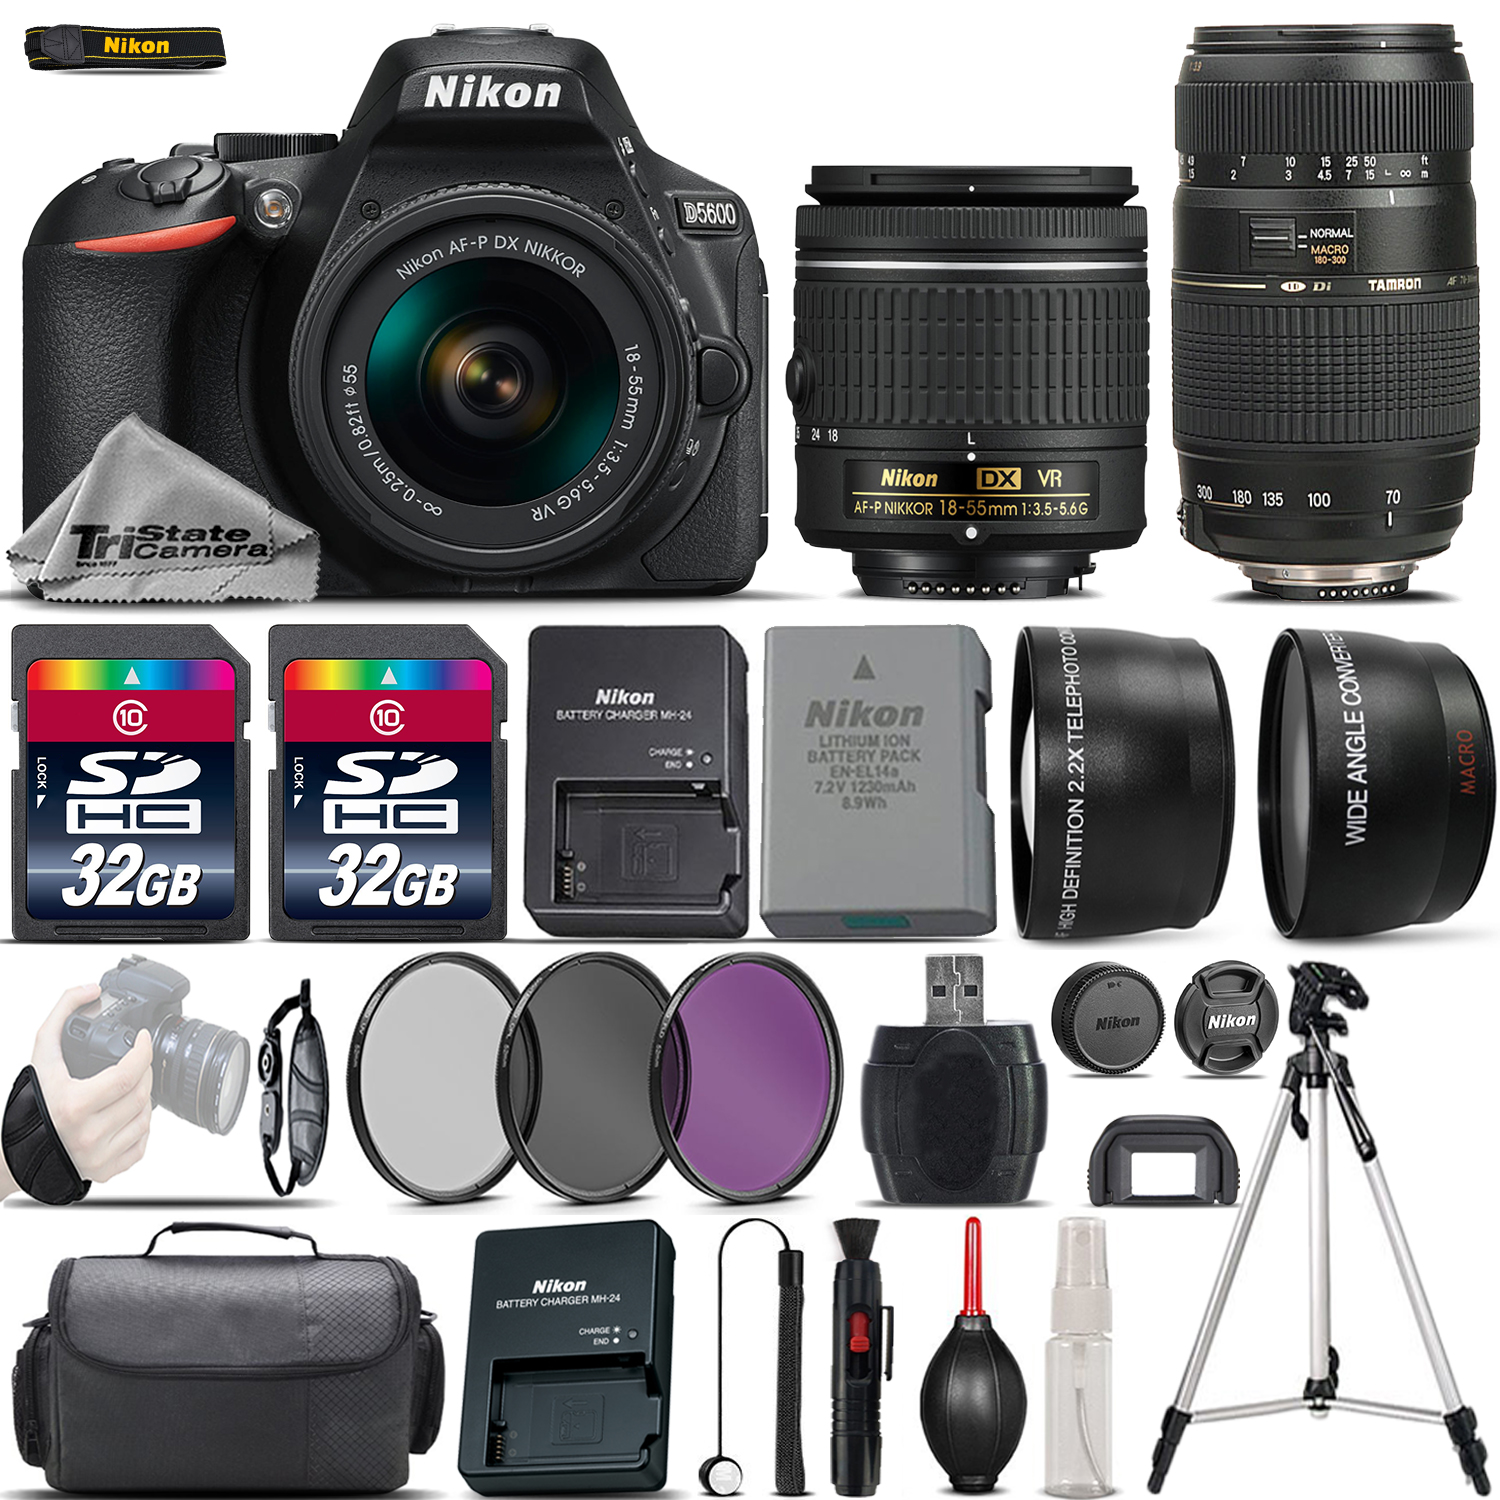 Nikon D5600 Digital SLR Camera + 18-55mm VR + 70-300mm + 64GB & More -4 Lens Kit